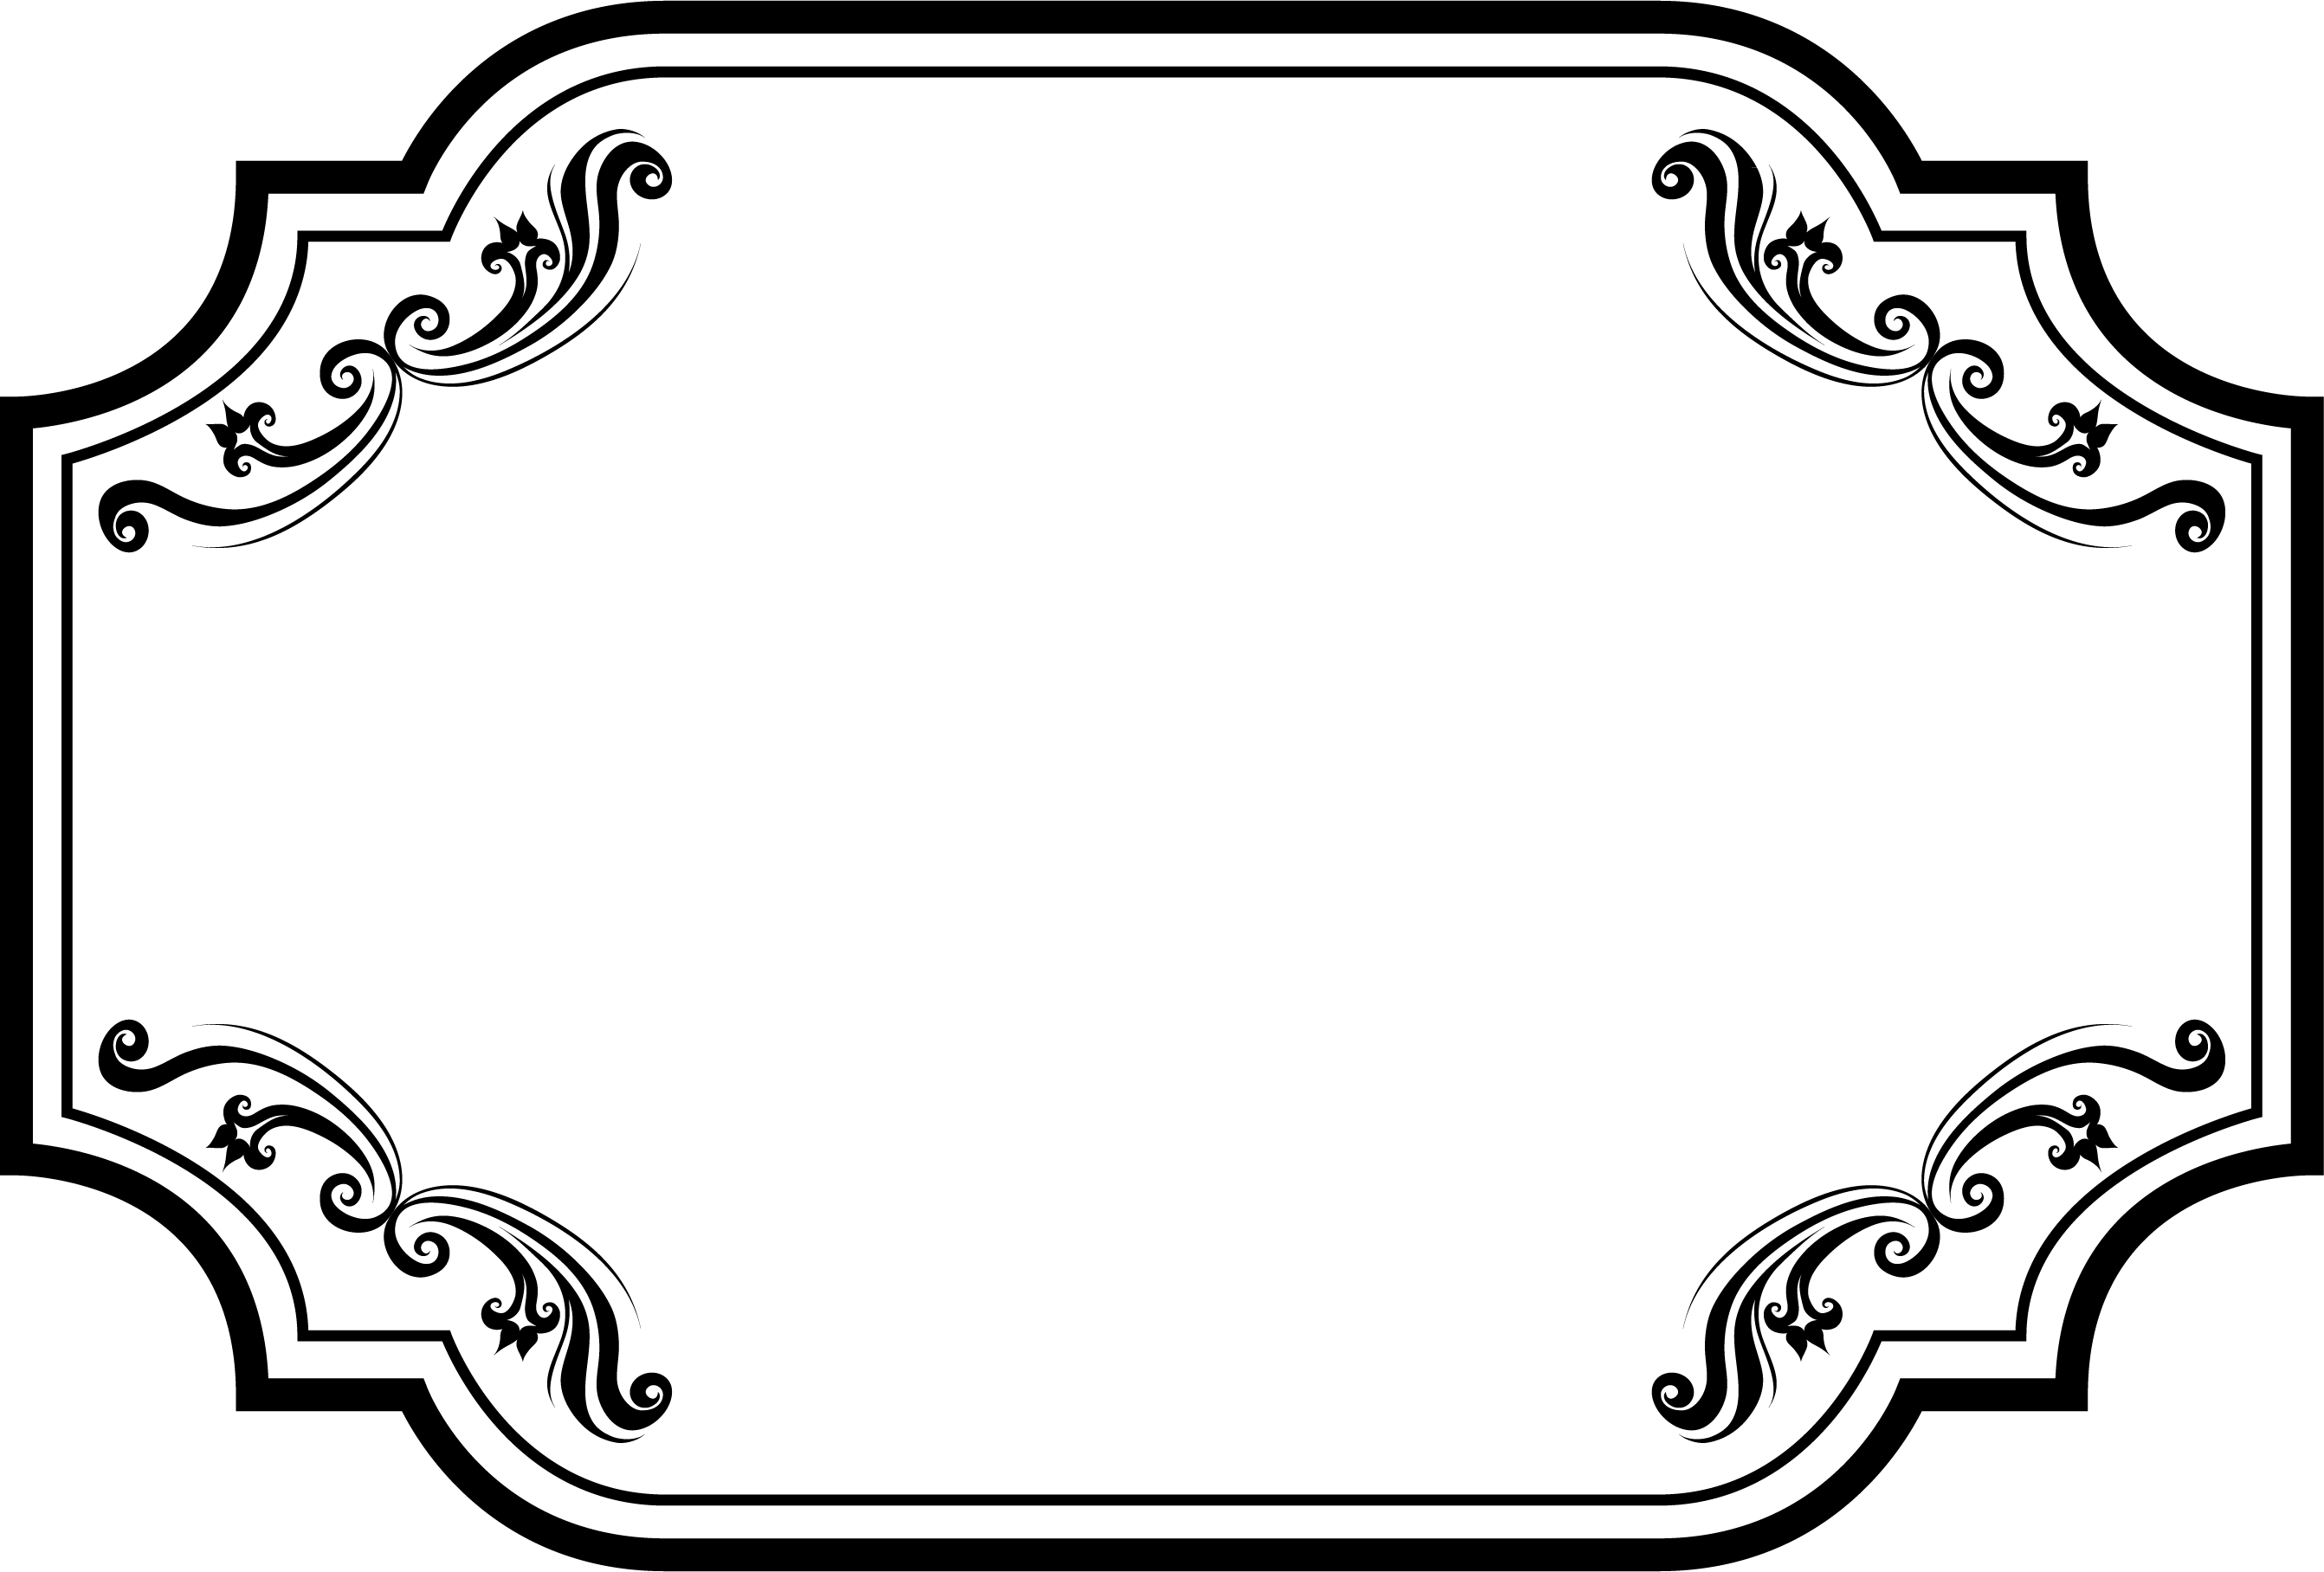 2684x1816 Results For Simple Vintage Frame Vector Free Download